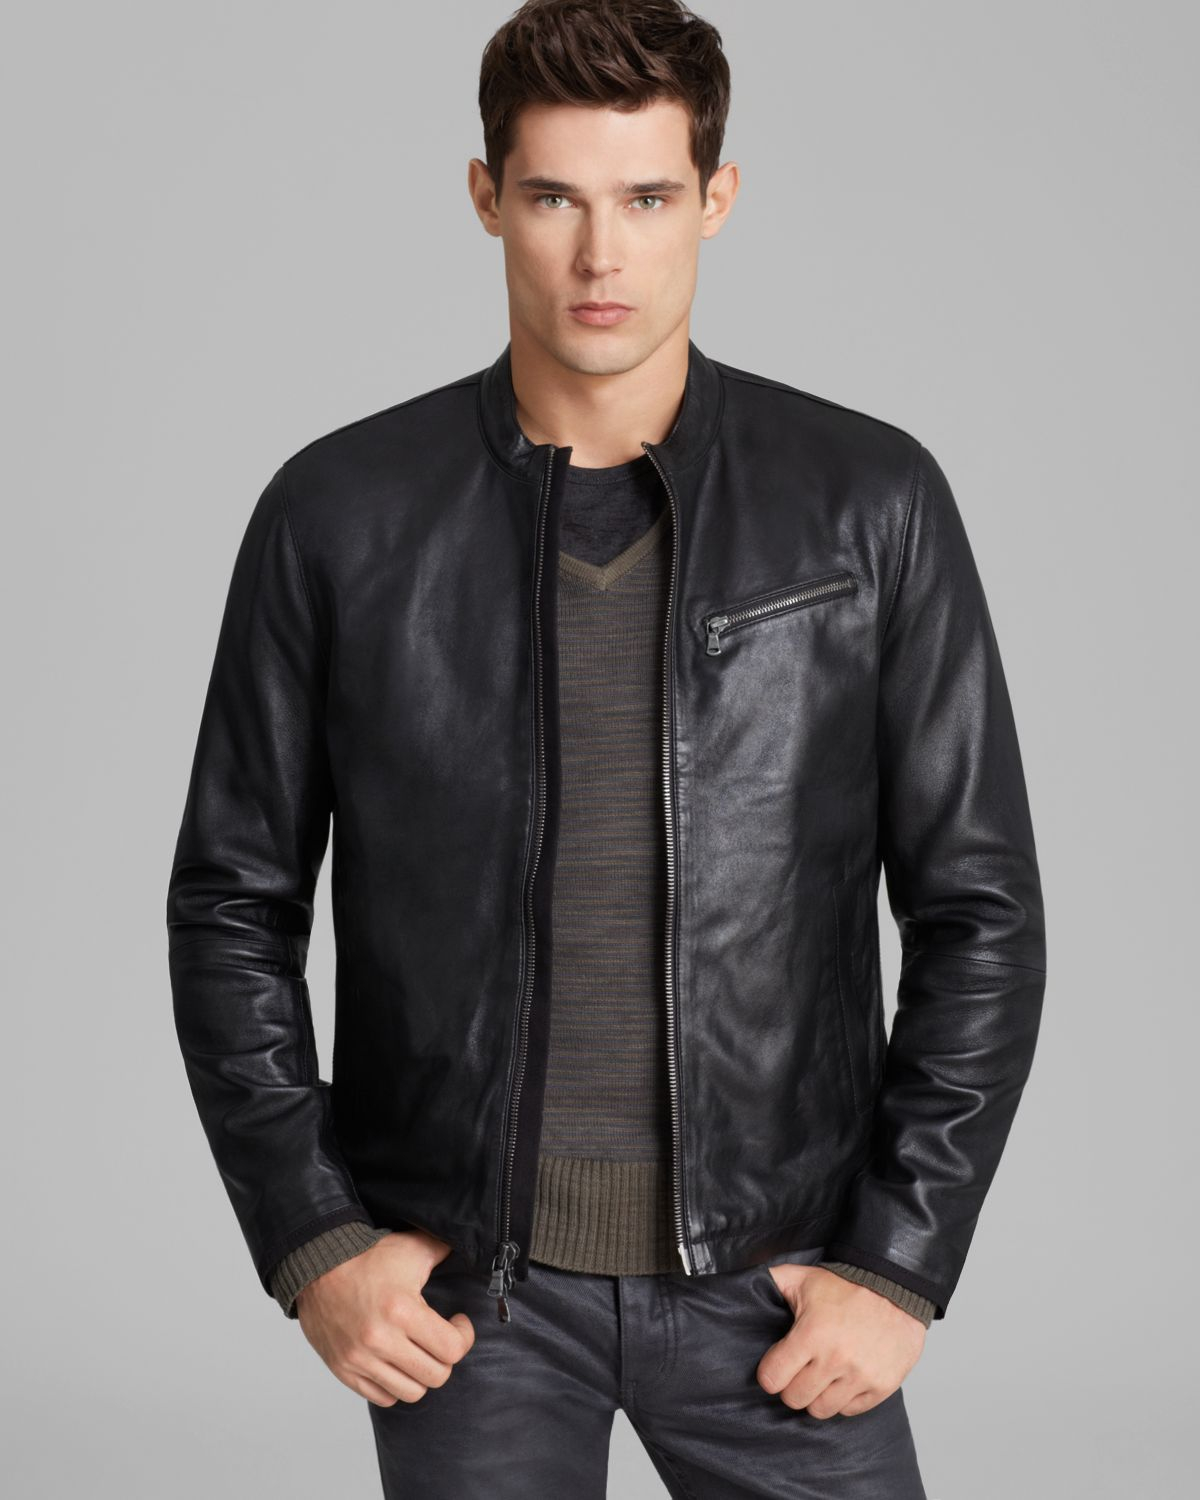 Lyst - John Varvatos Usa Denimstyle Leather Jacket in ...